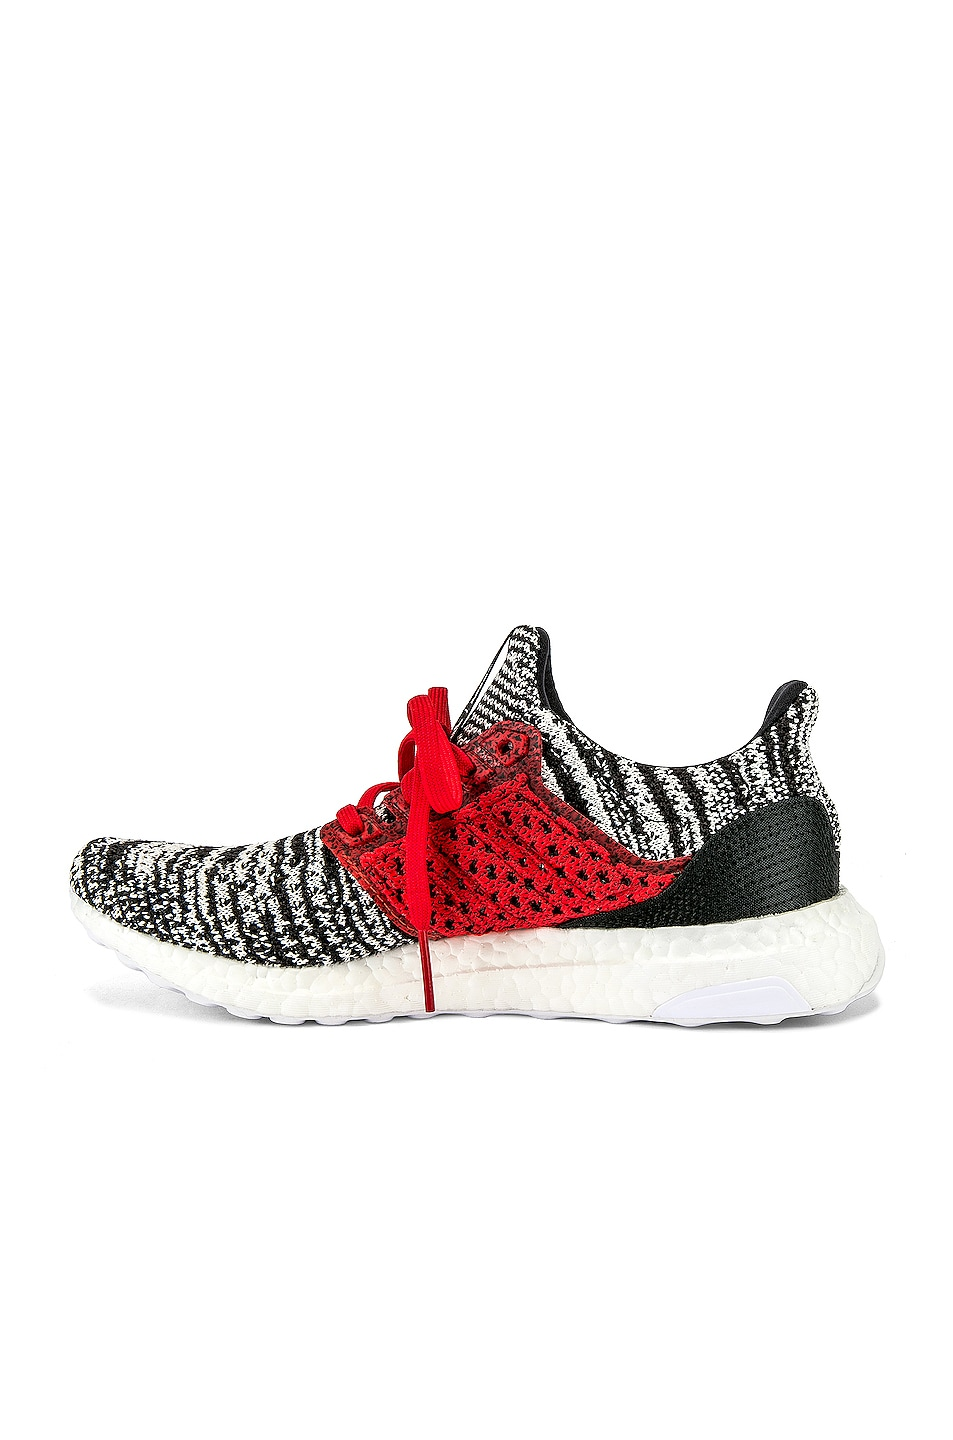 Image 5 of adidas by MISSONI Ultraboost Clima Sneaker in Black & White & Red